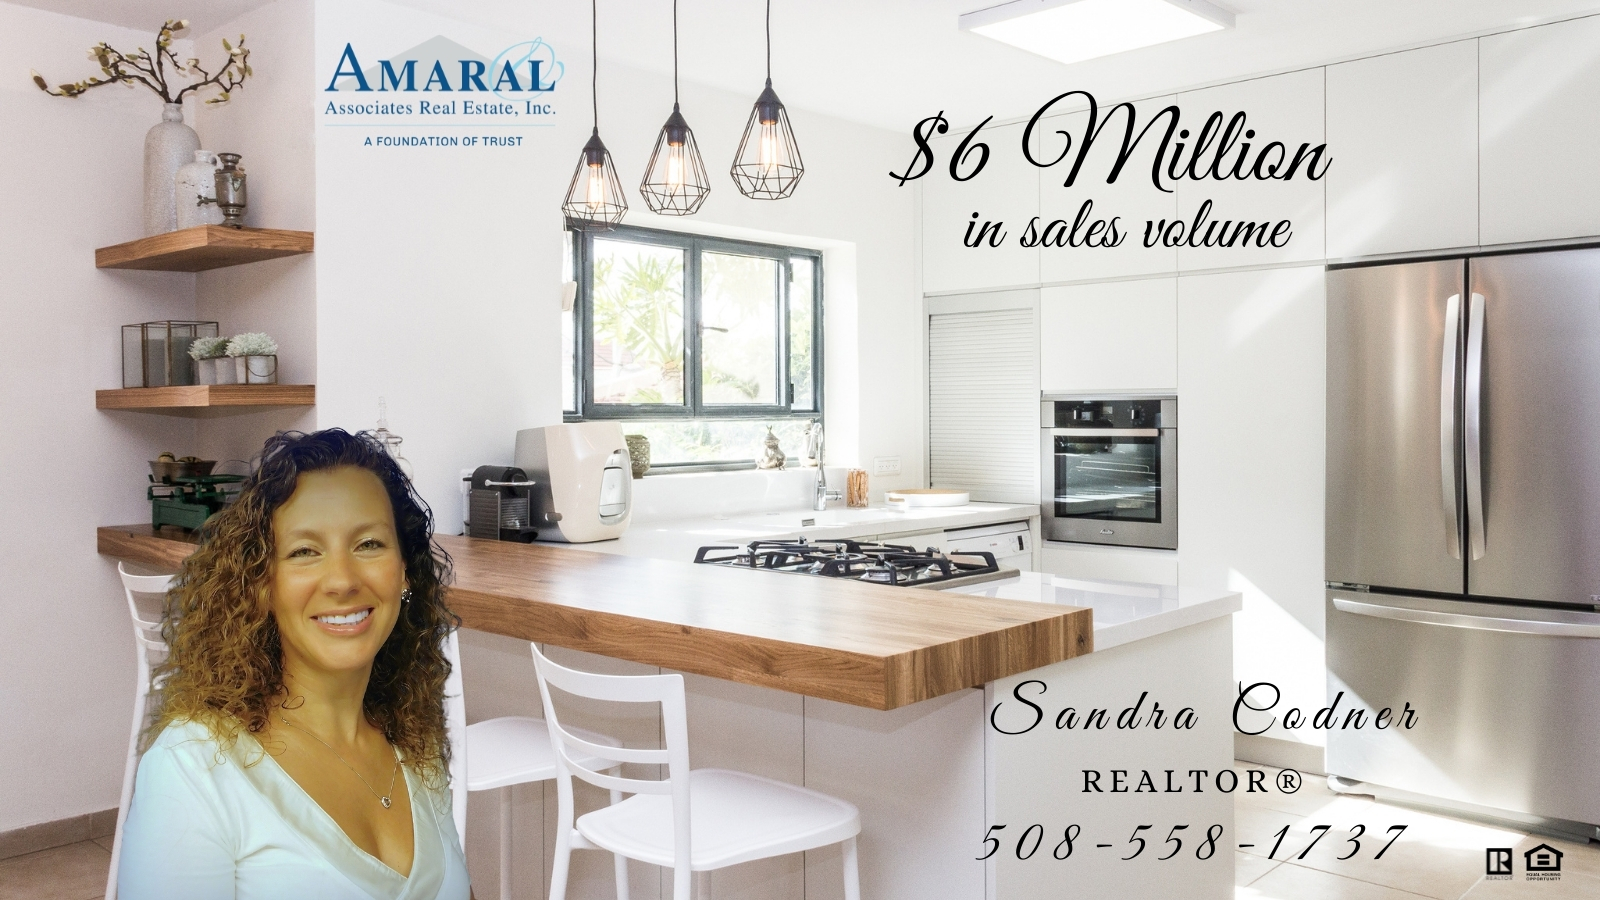 Congratulations to Sandra Codner for reaching this new milestone in 2021!